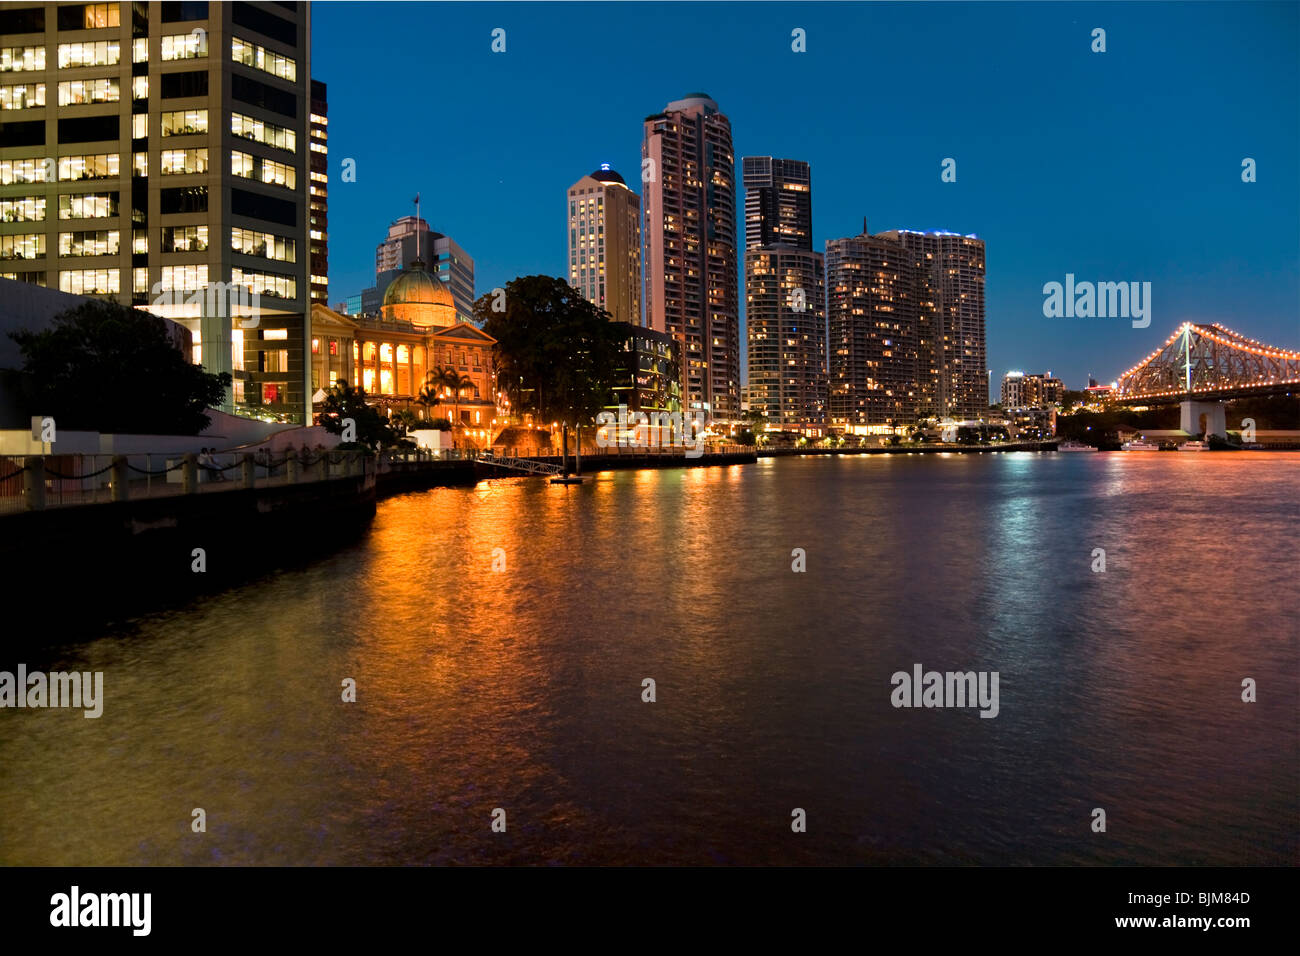 River lit up at night with cityscape and skyscrapers, Brisbane, Queensland, Australia - Stock Image